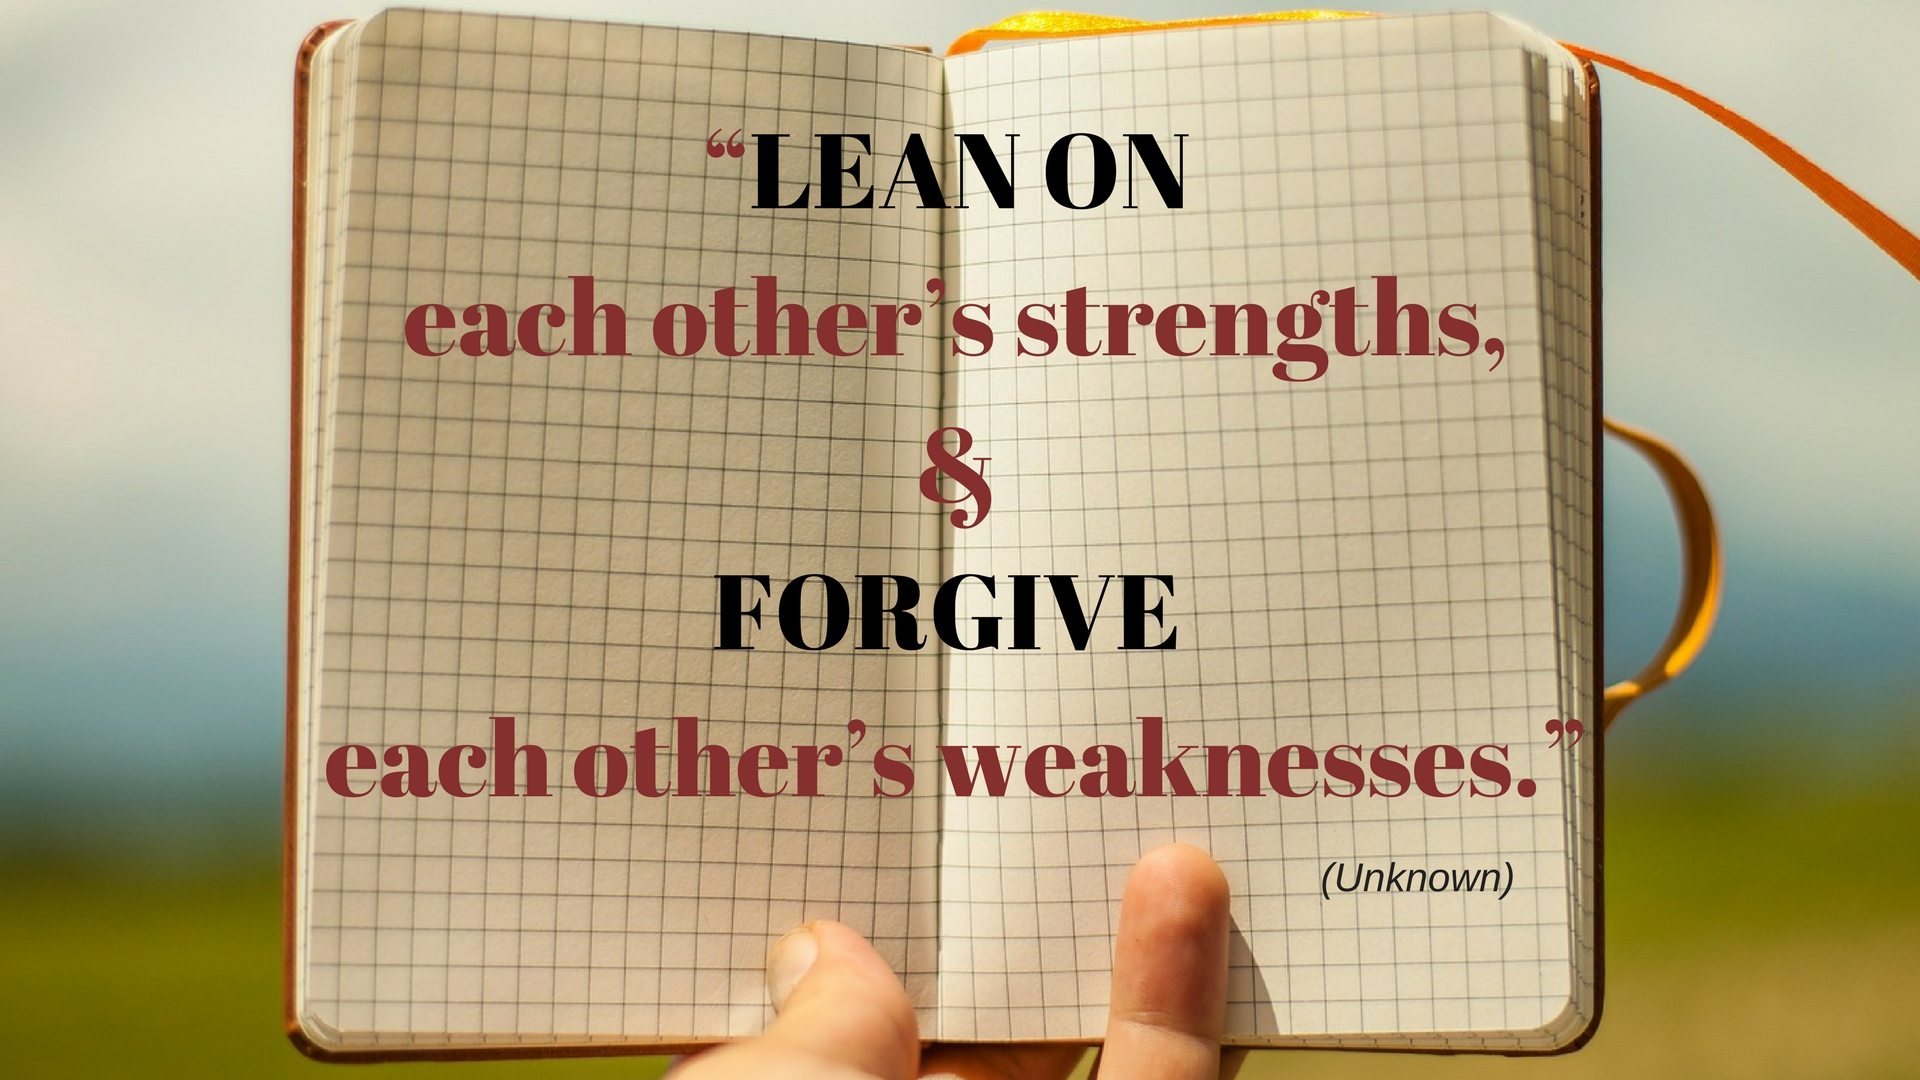 Lean on each other's strengths - quotes that teach - Pixabay - Canva